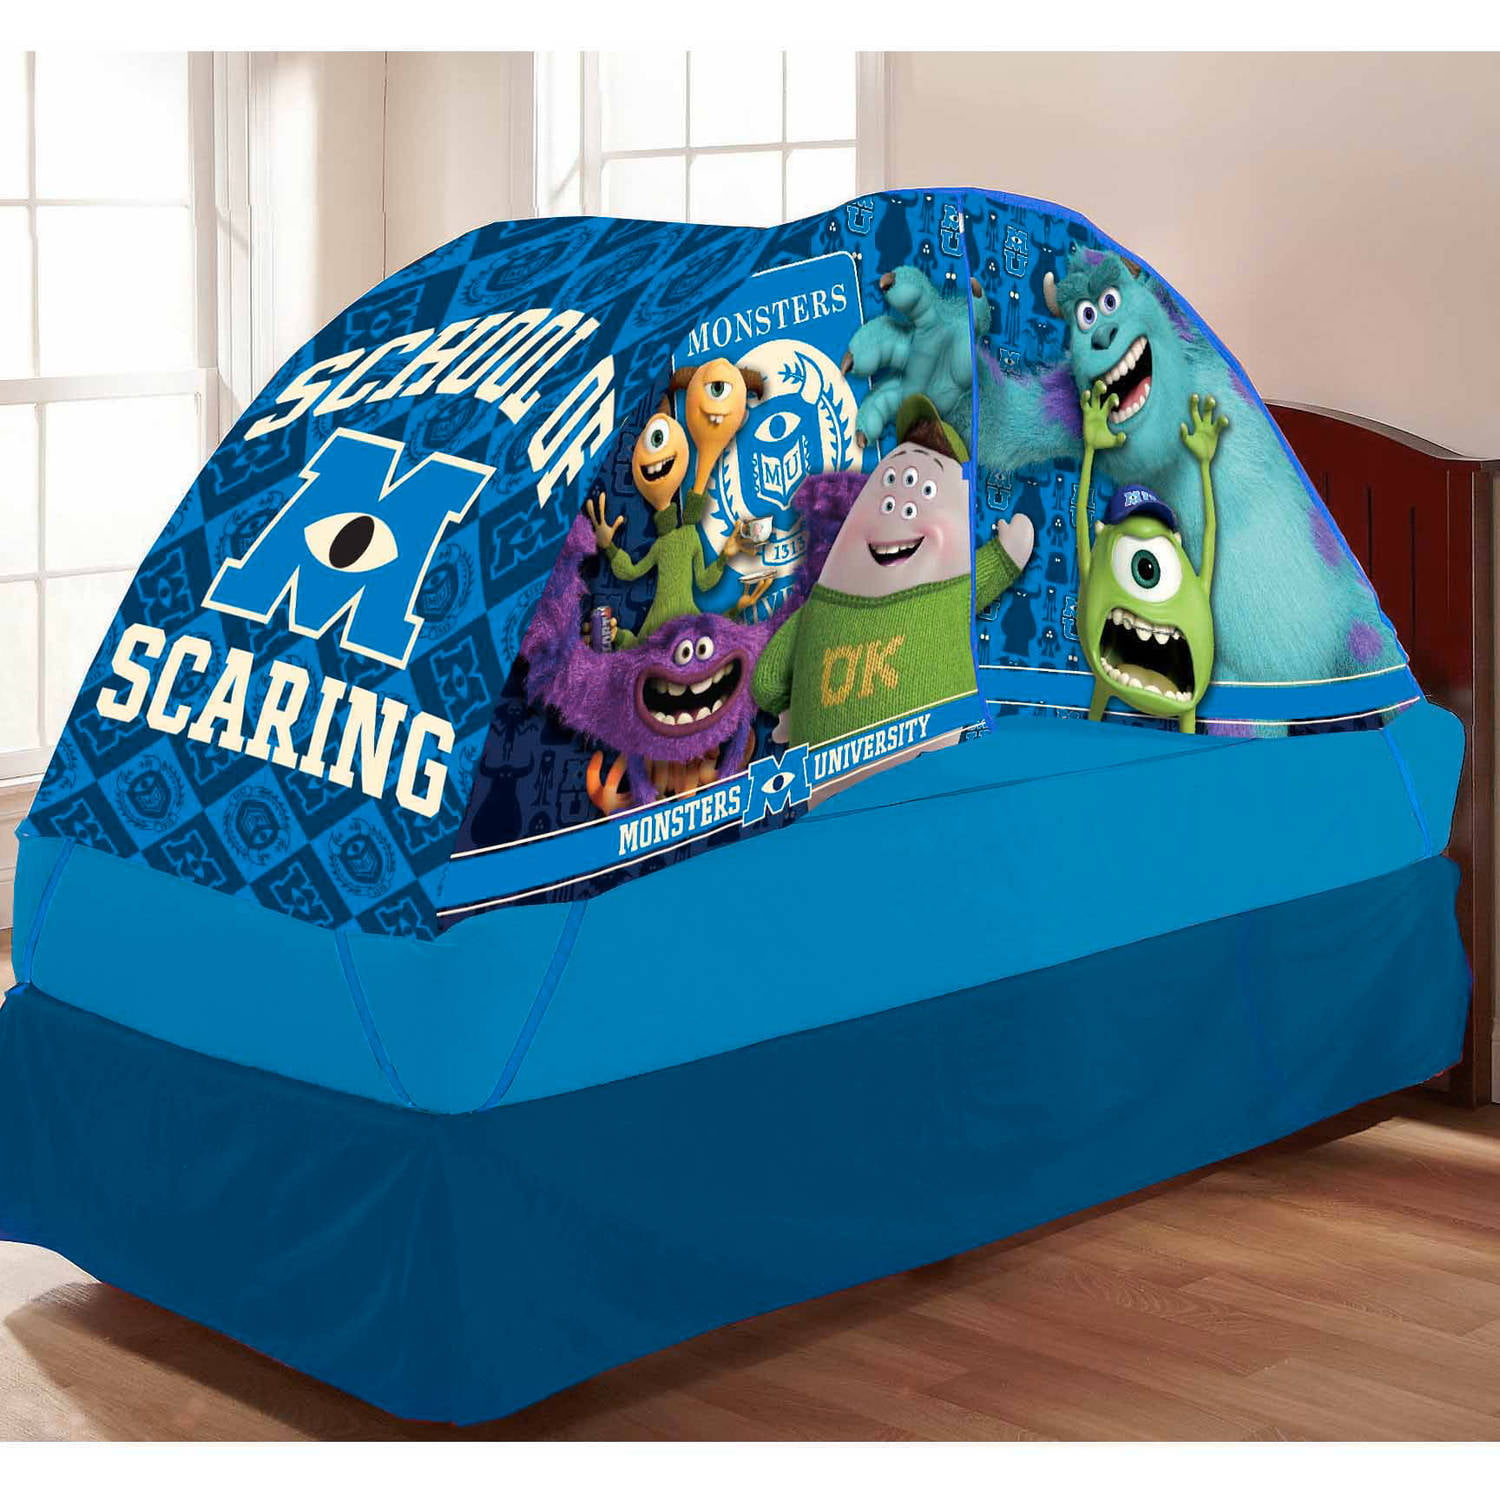 & Monsteru0027s University Bed Tent with Pushlight - Walmart.com